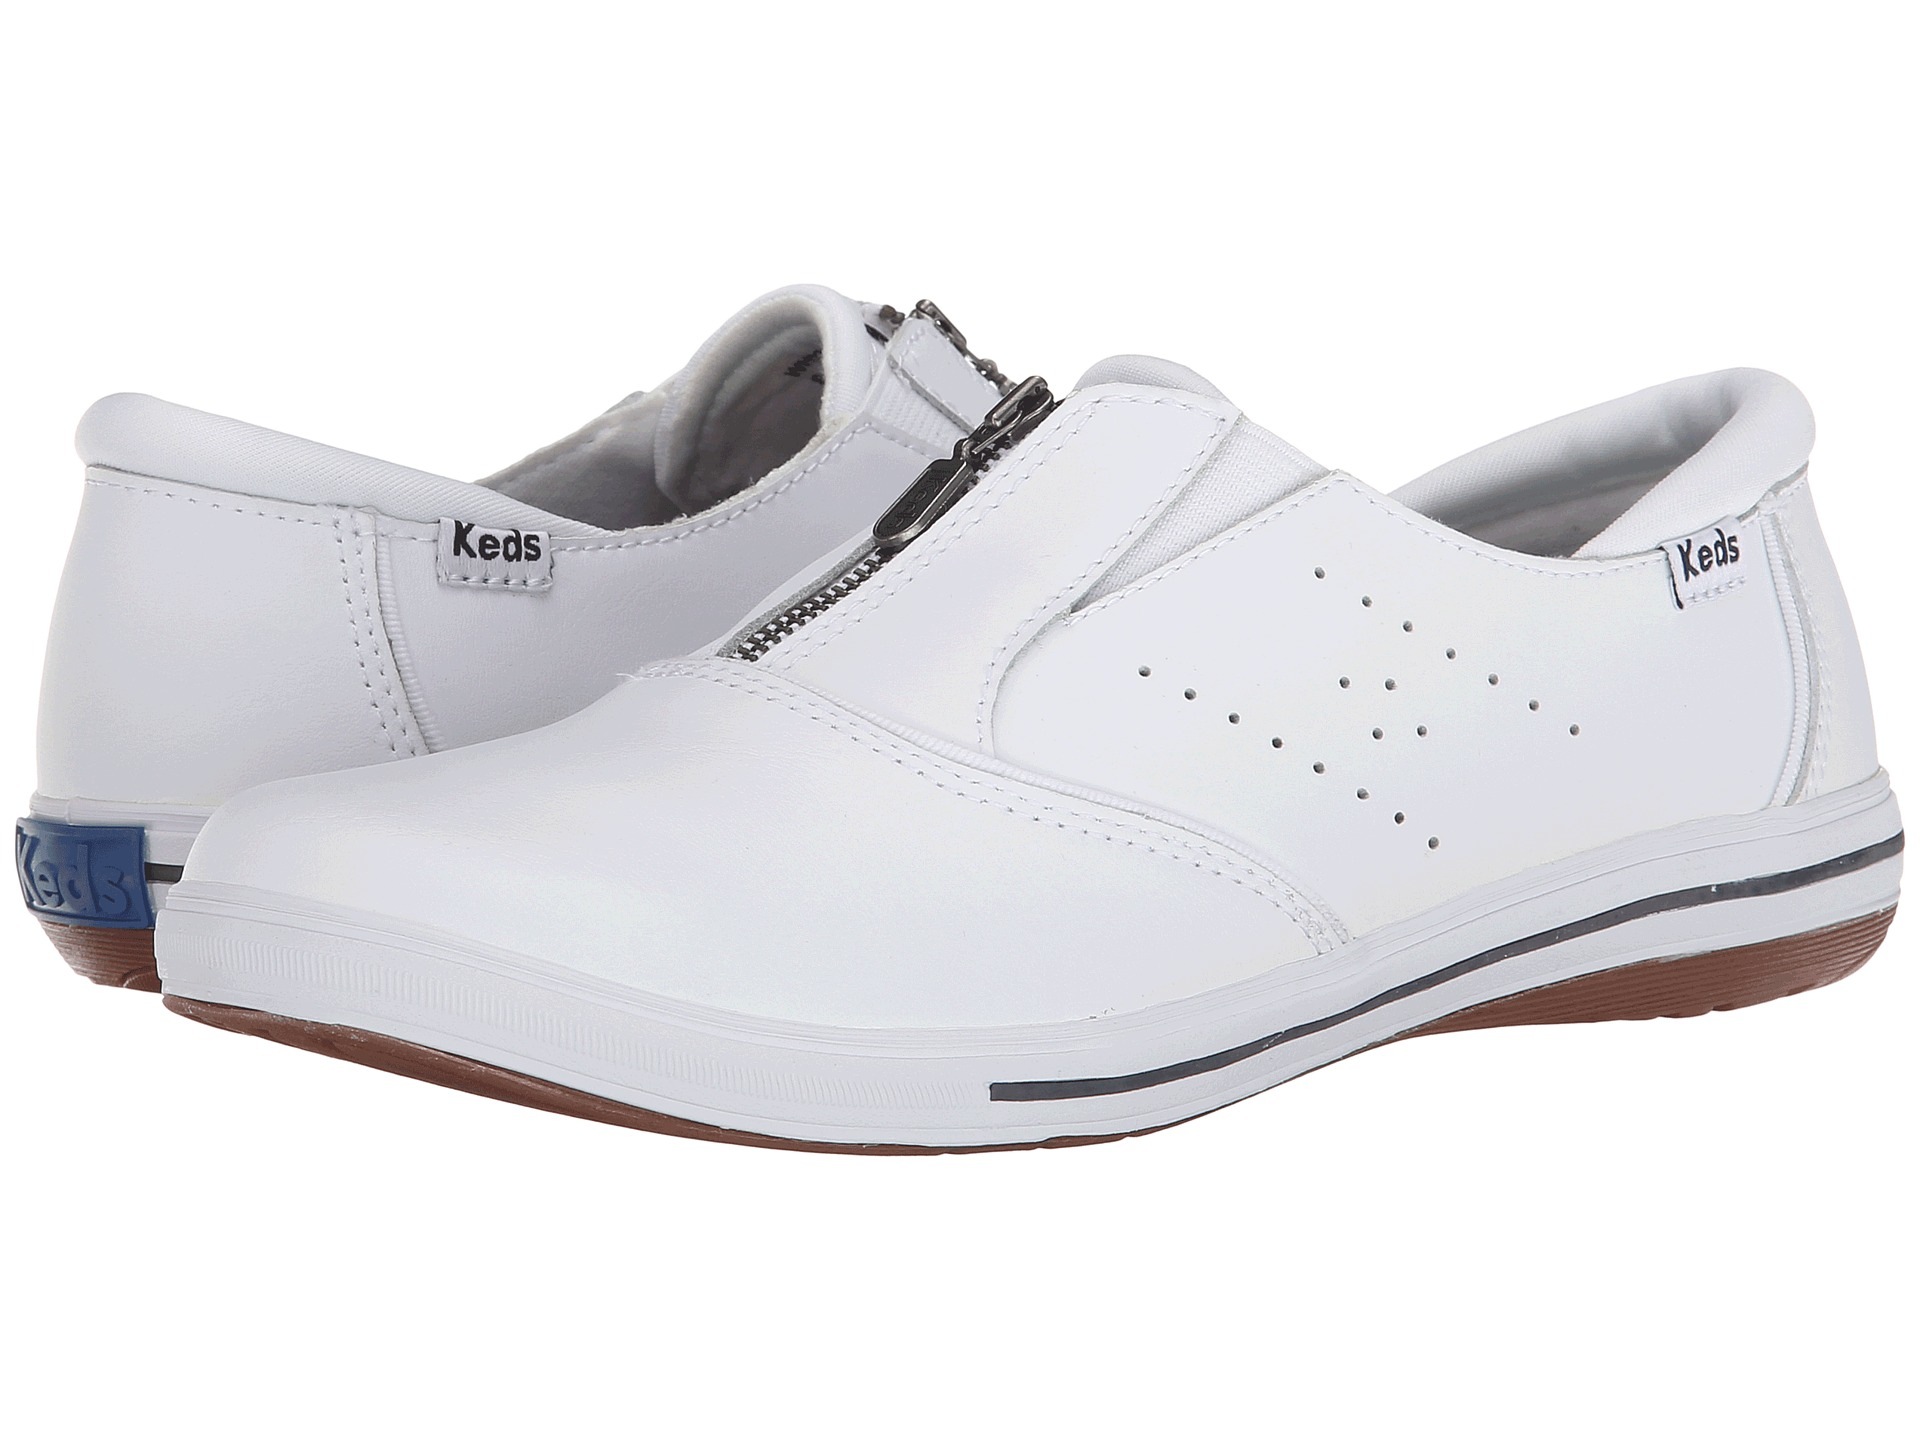 Keds Pacey Zip Smooth Leather in White